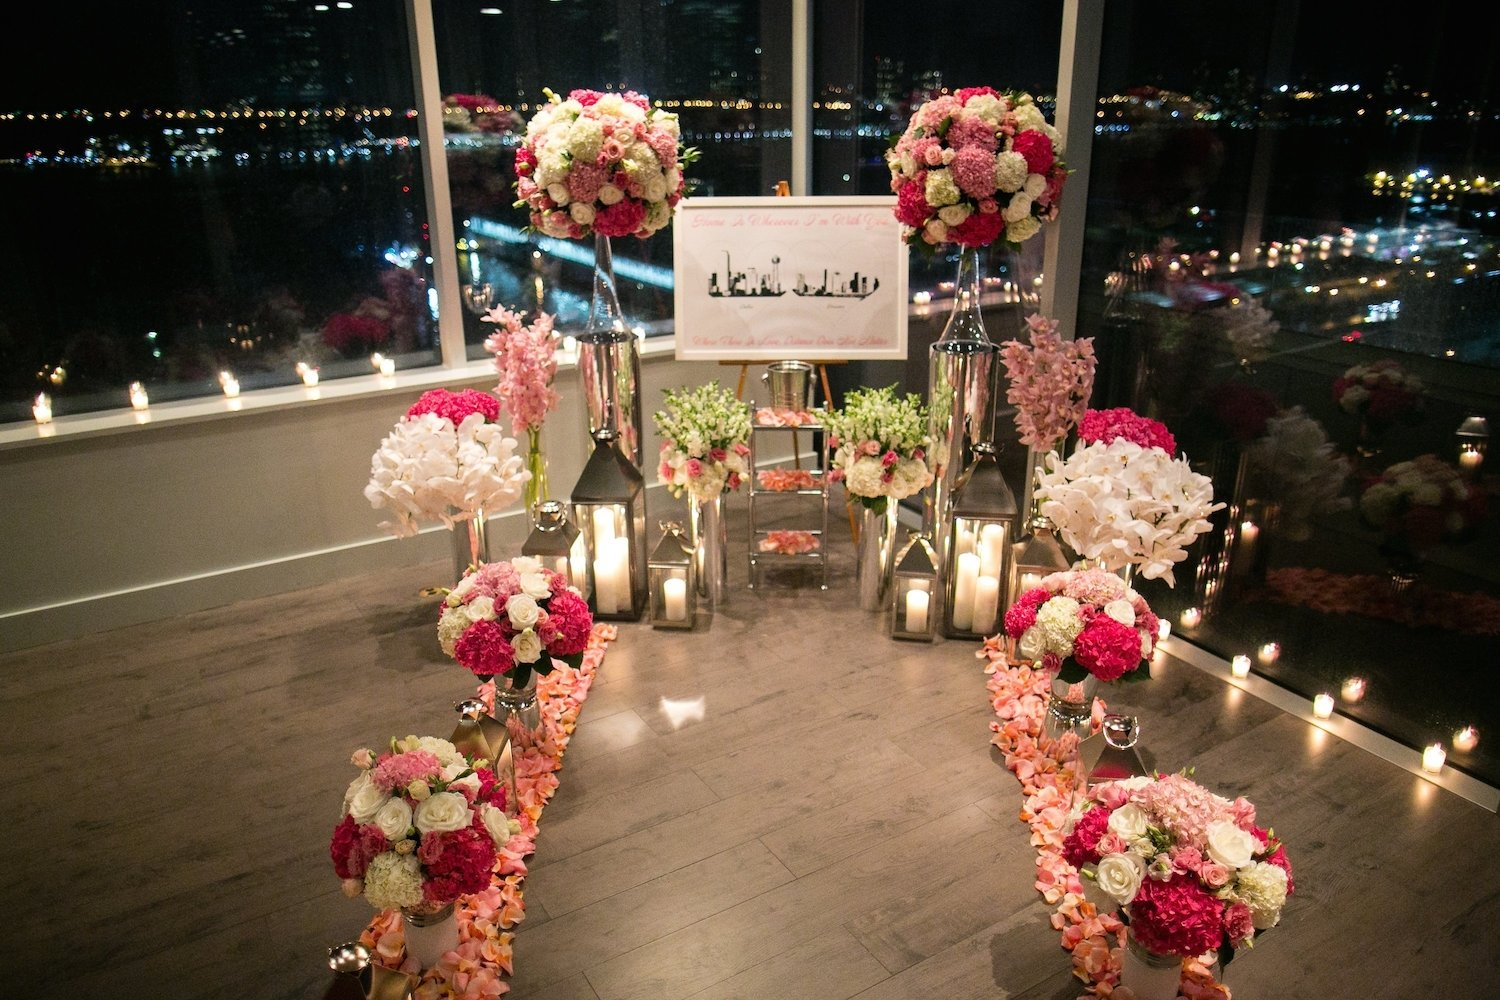 most romantic proposal idea in new york city | the heart bandits blog